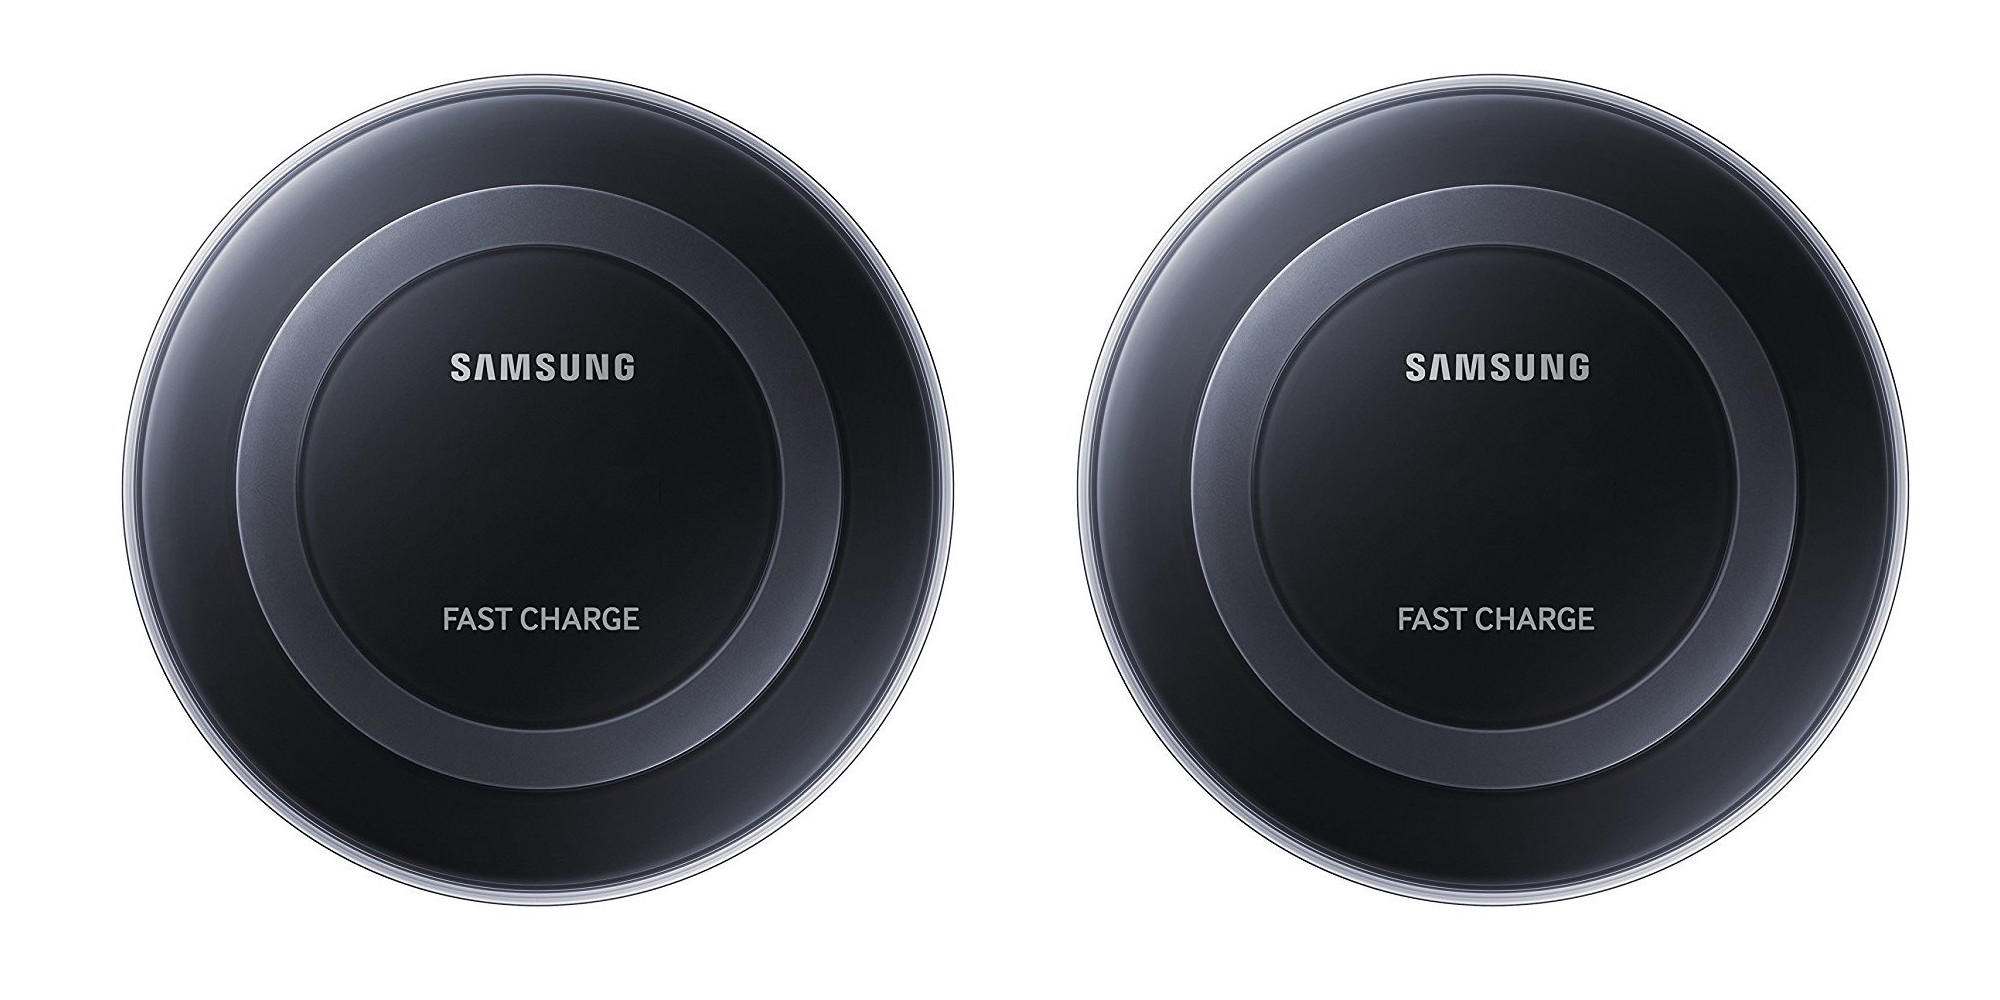 Samsung's Qi Fast Charge Pad hits its Amazon all-time low at $25 Prime shipped